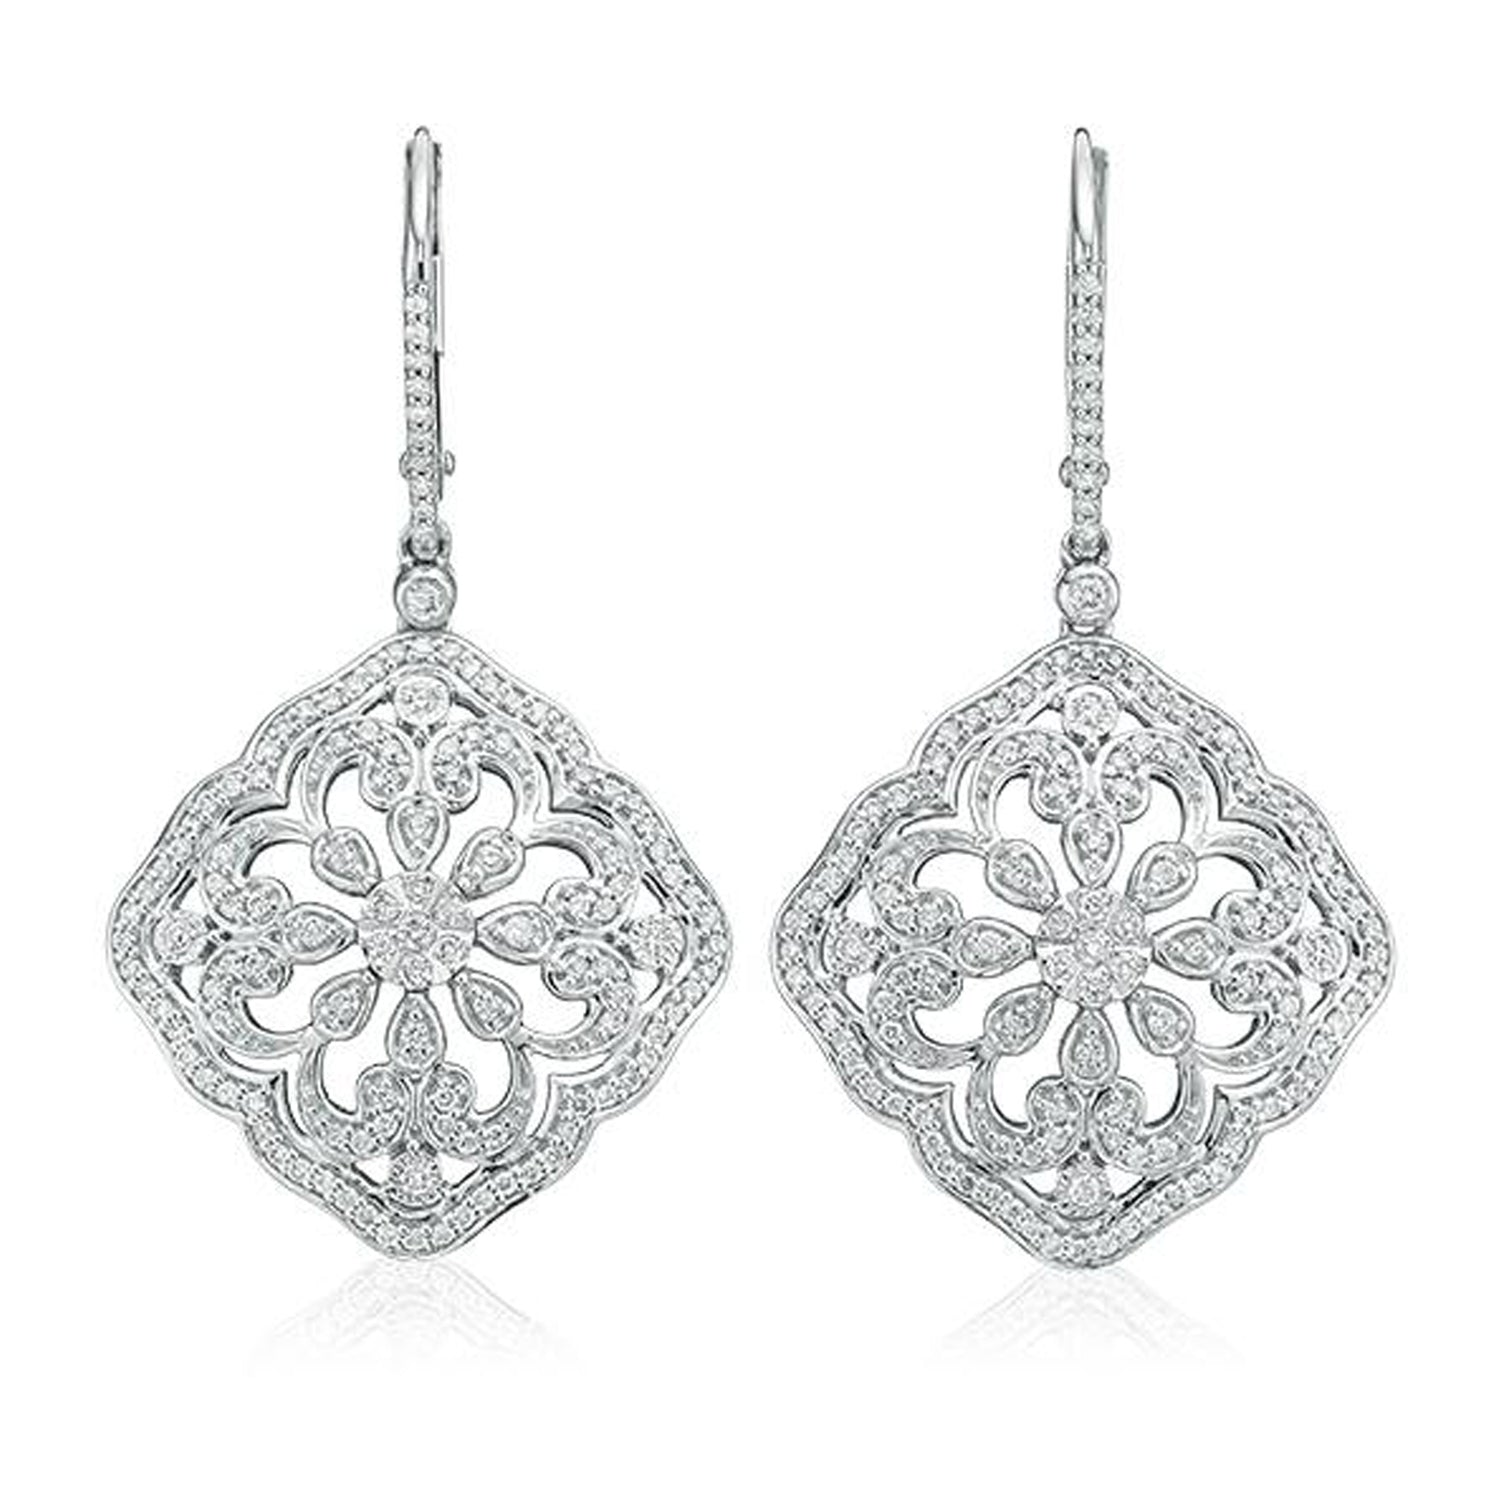 Chandelier Collection 9ct White Gold Round Brilliant Cut with 3/4 CARAT tw of Diamonds